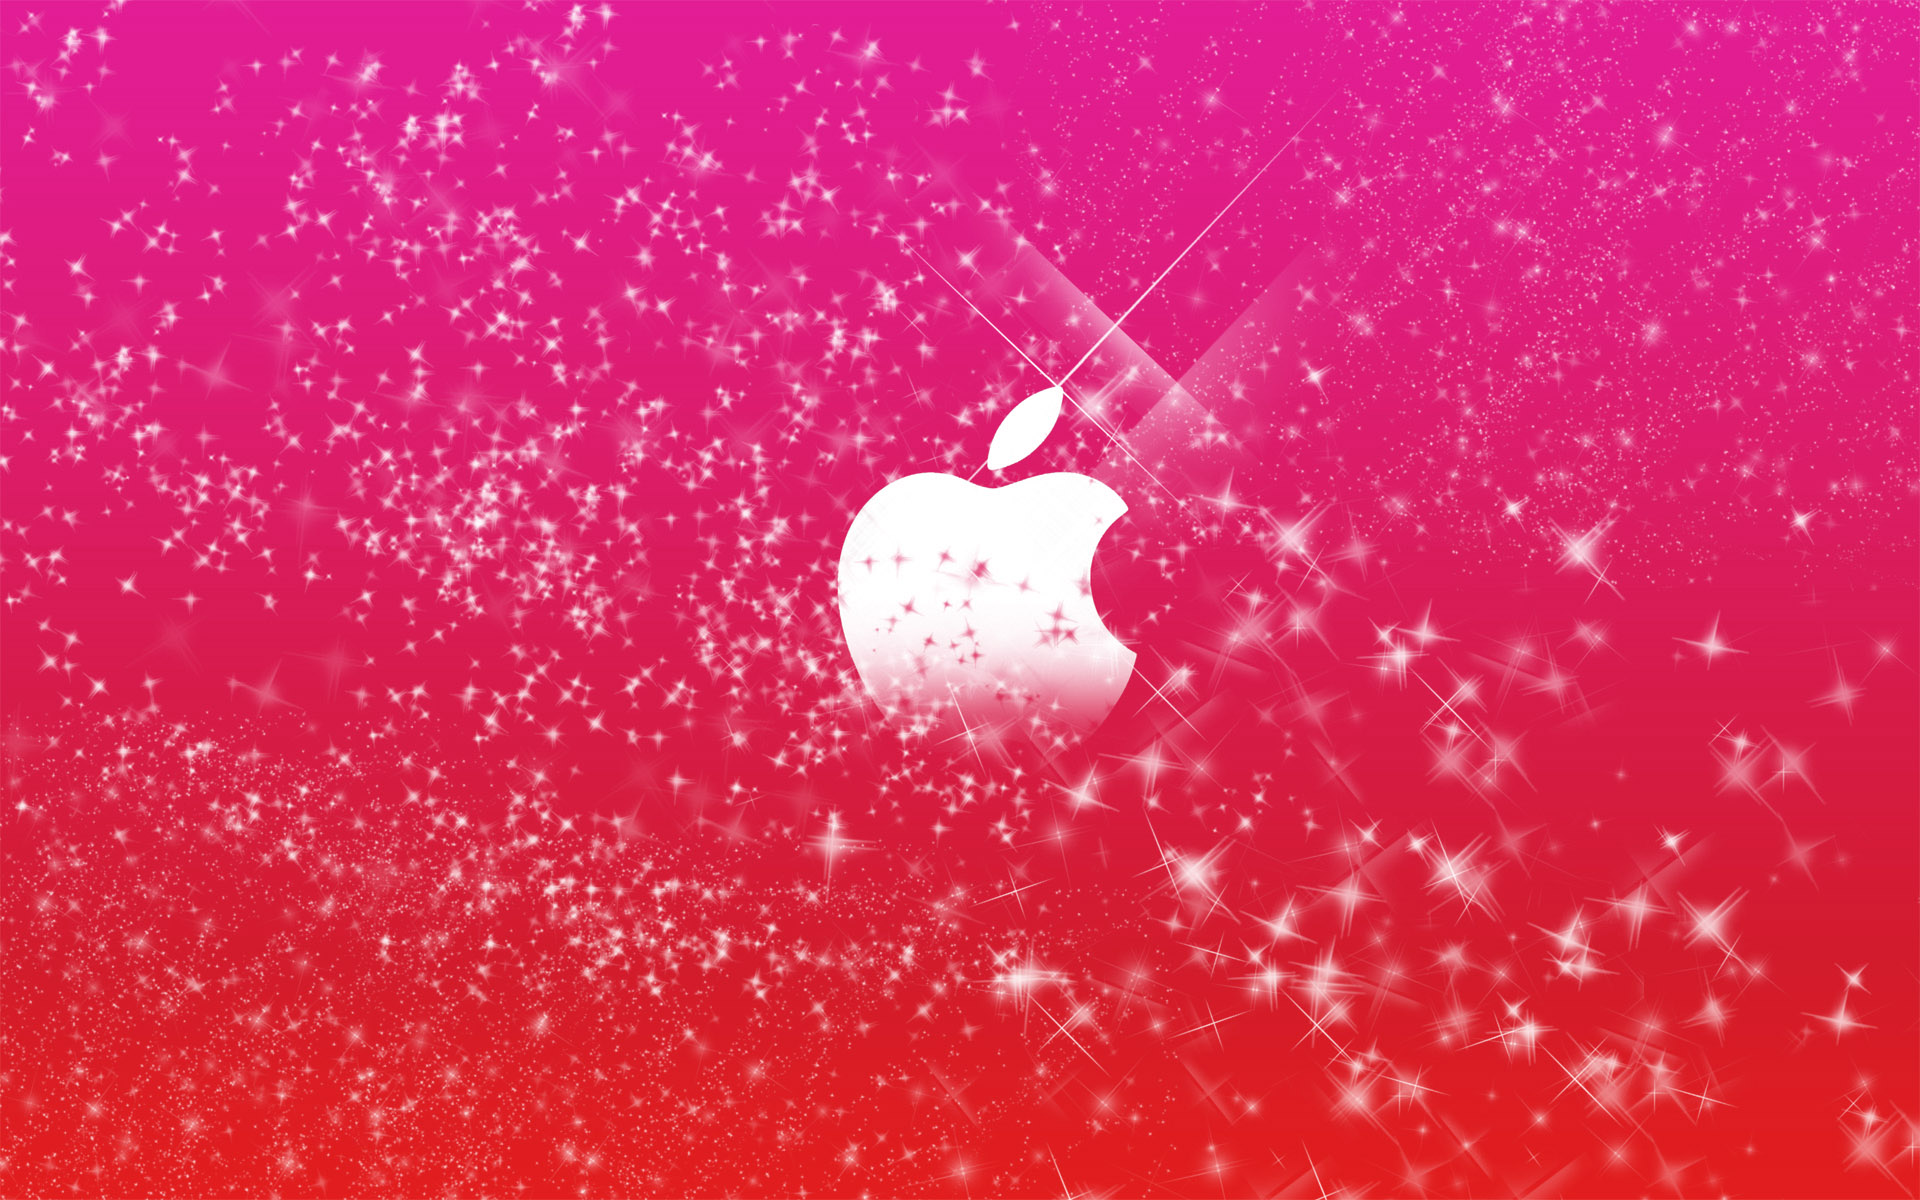 Apple Logo Wallpapers HD pink stars